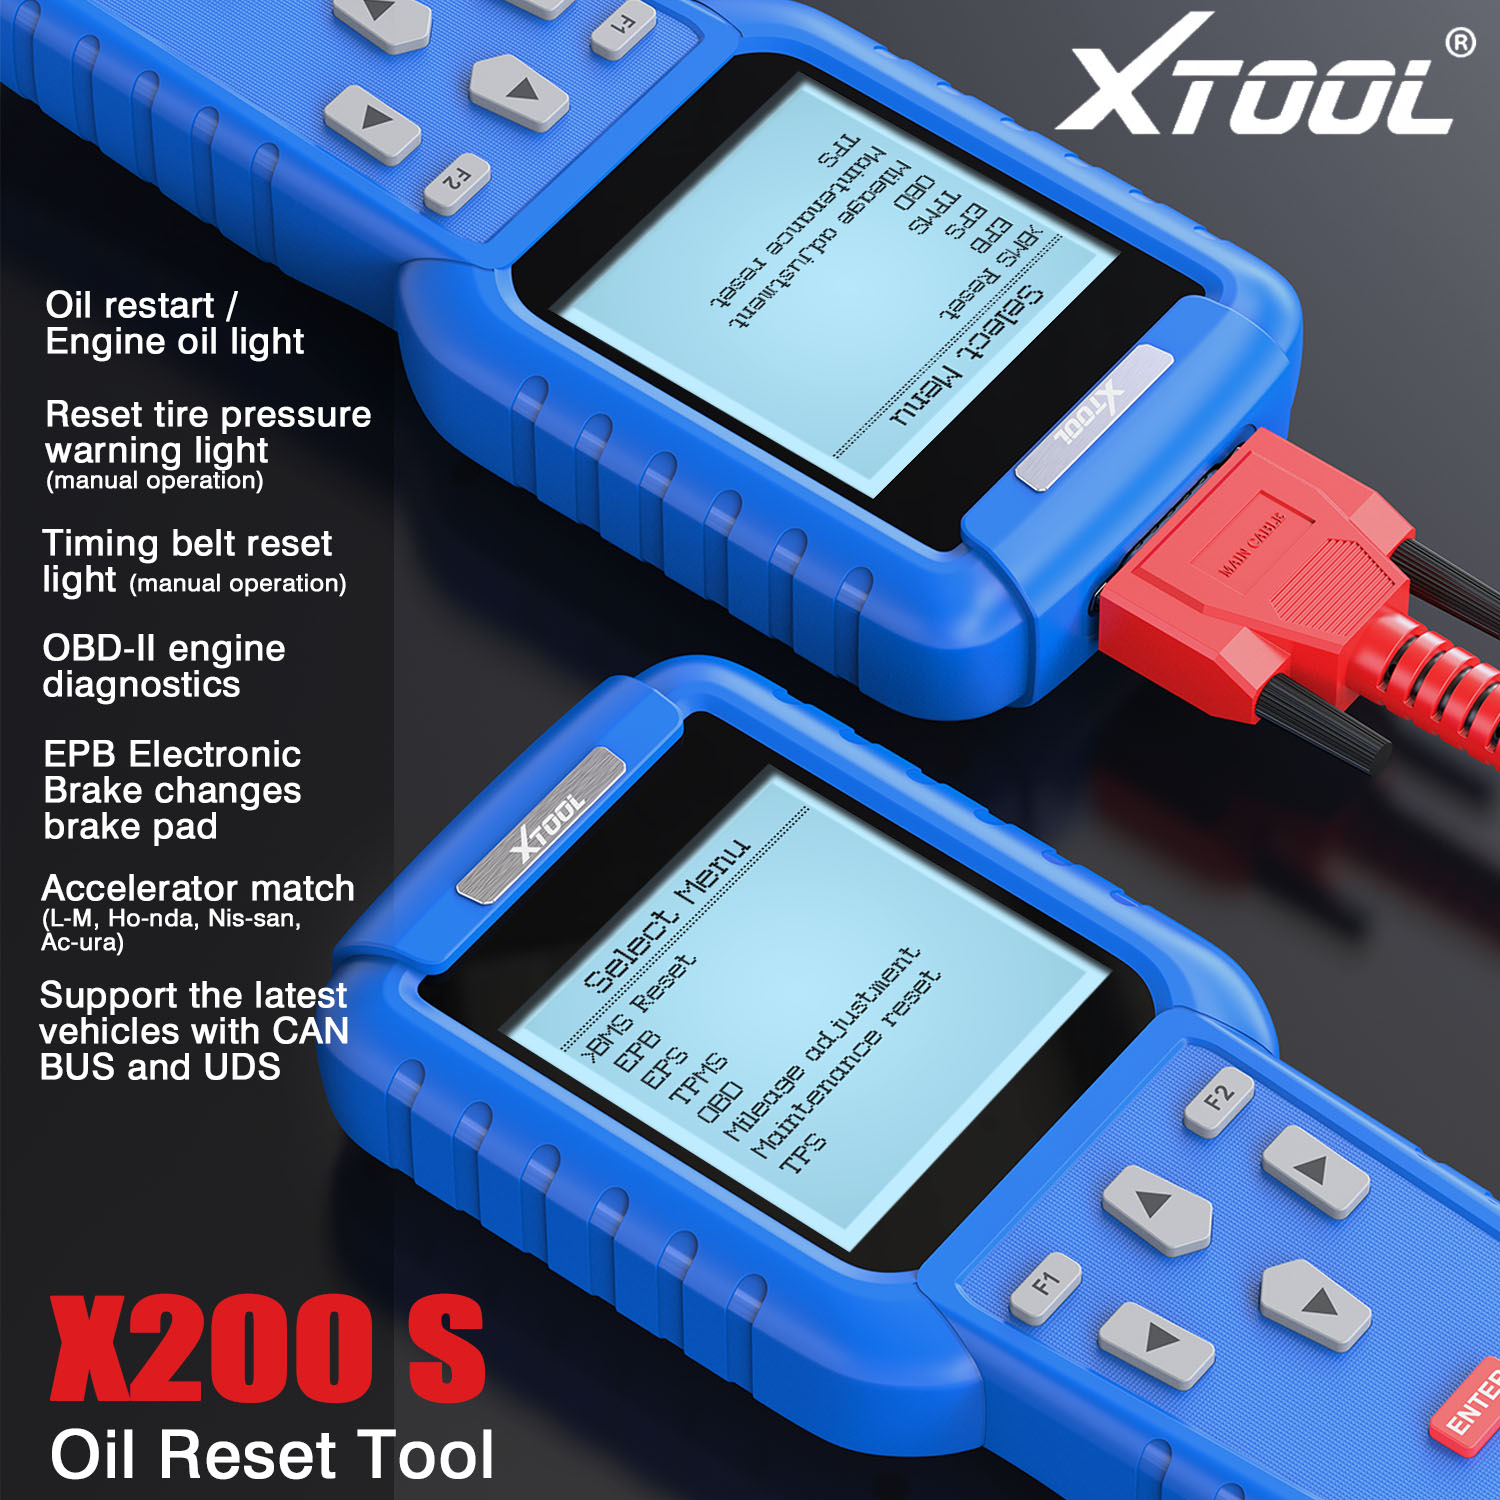 Xtool X200 Functions